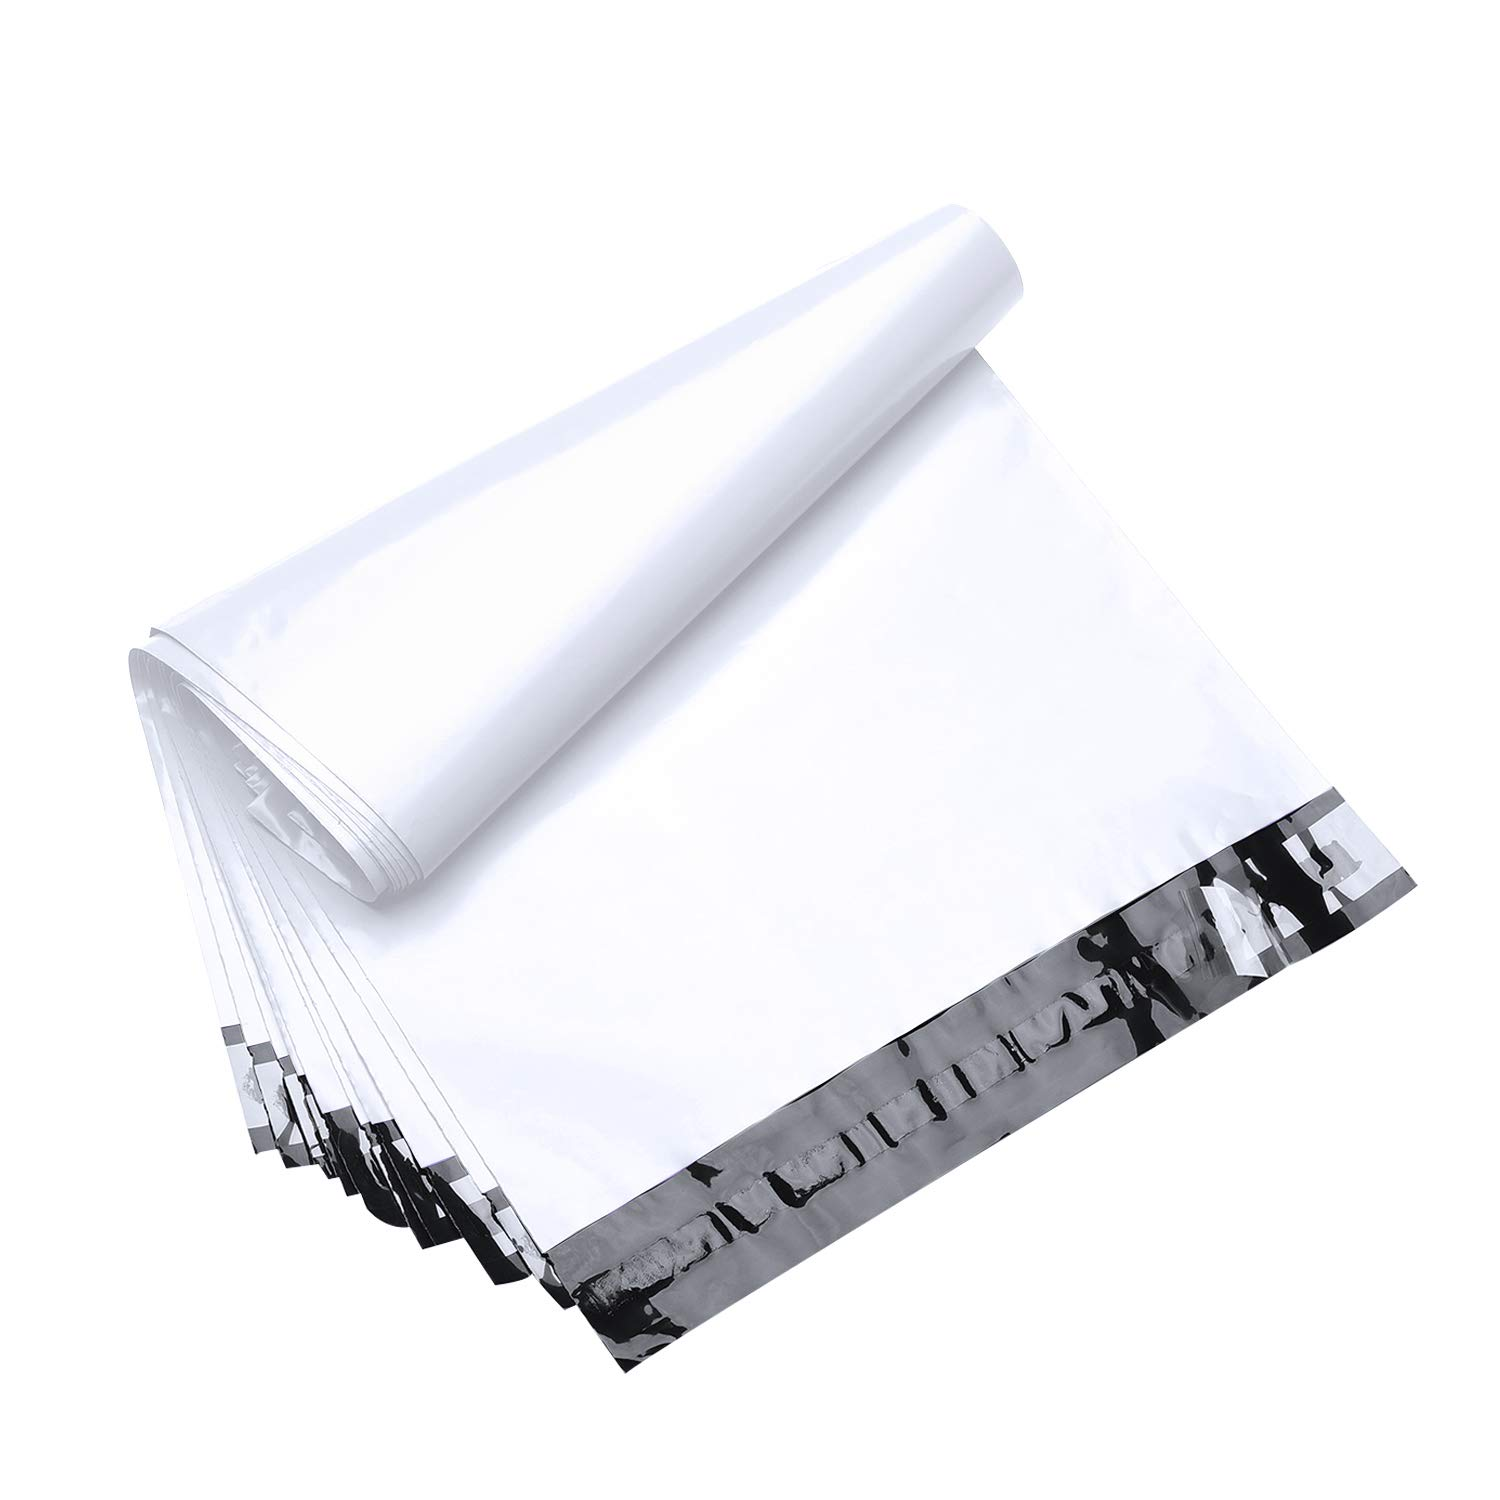 FU Global 200pcs 14.5x19 Poly Mailers Shipping Envelops Boutique Custom Bags Enhanced Durability Multipurpose Envelopes Keep Items Safe & Protected(White)